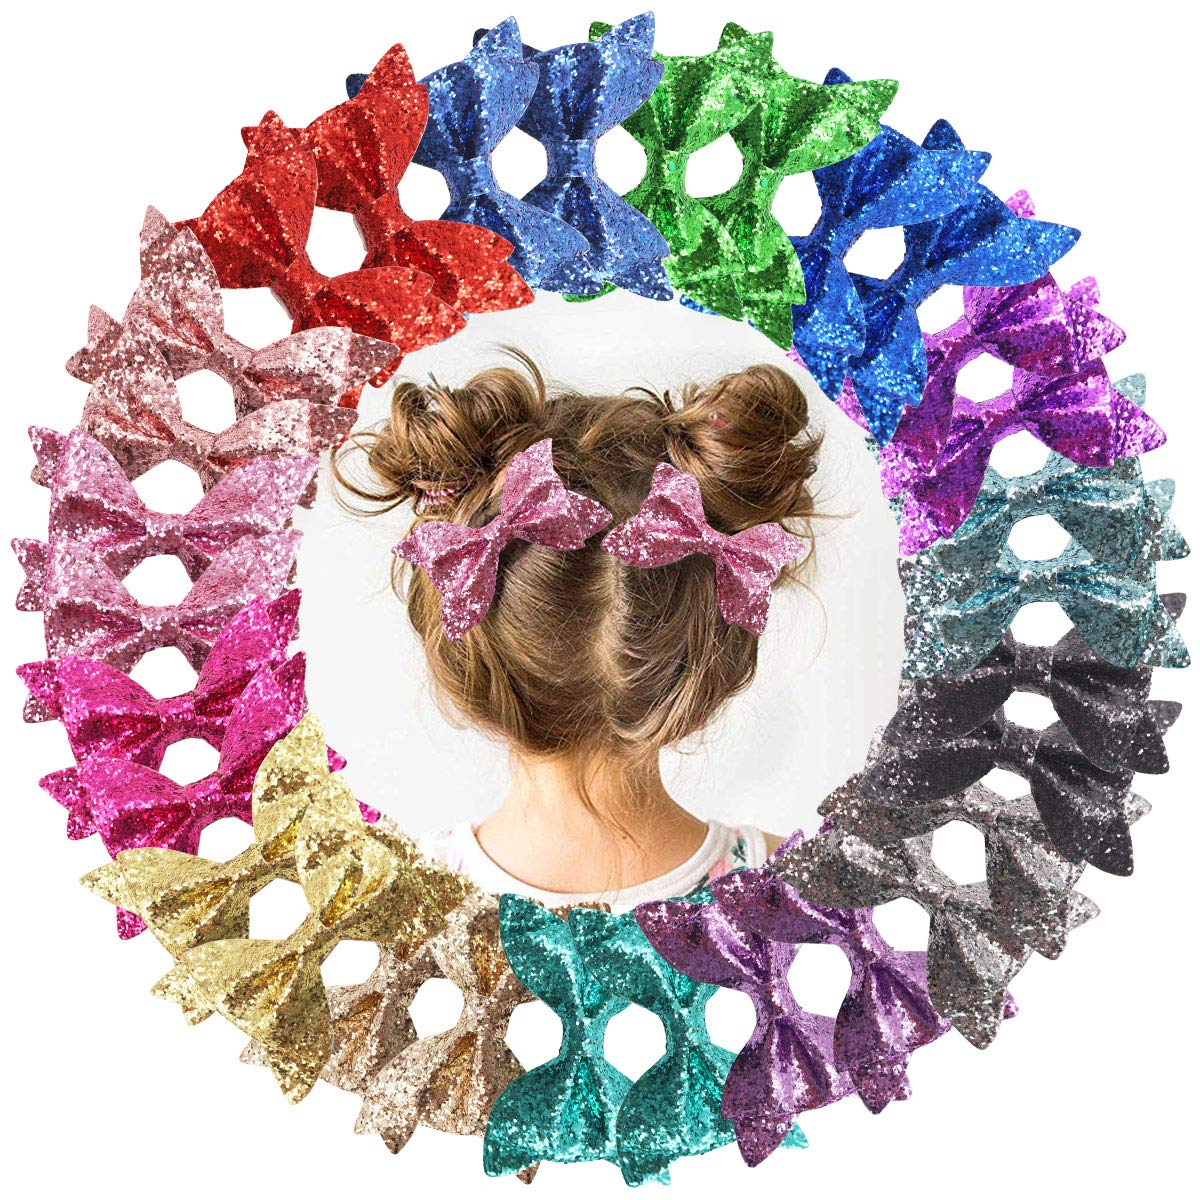 DeD 30 Pieces 4.5 Inch Glitter hair Bows clips for girl Multi Color Sparkly Sequins hair bows Alligator Clips for Baby Girls Teens Toddlers(15 Pair)